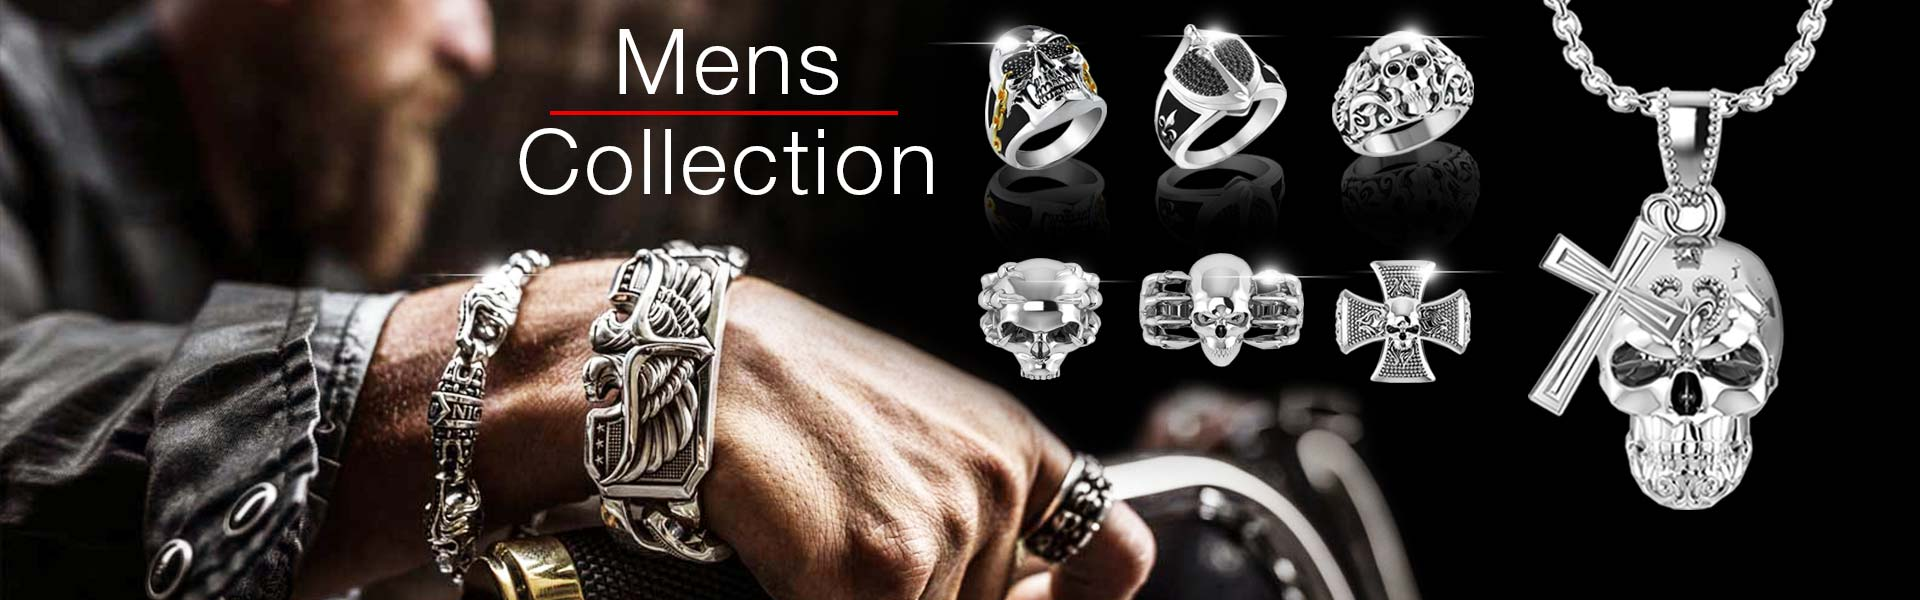 mens collection banner